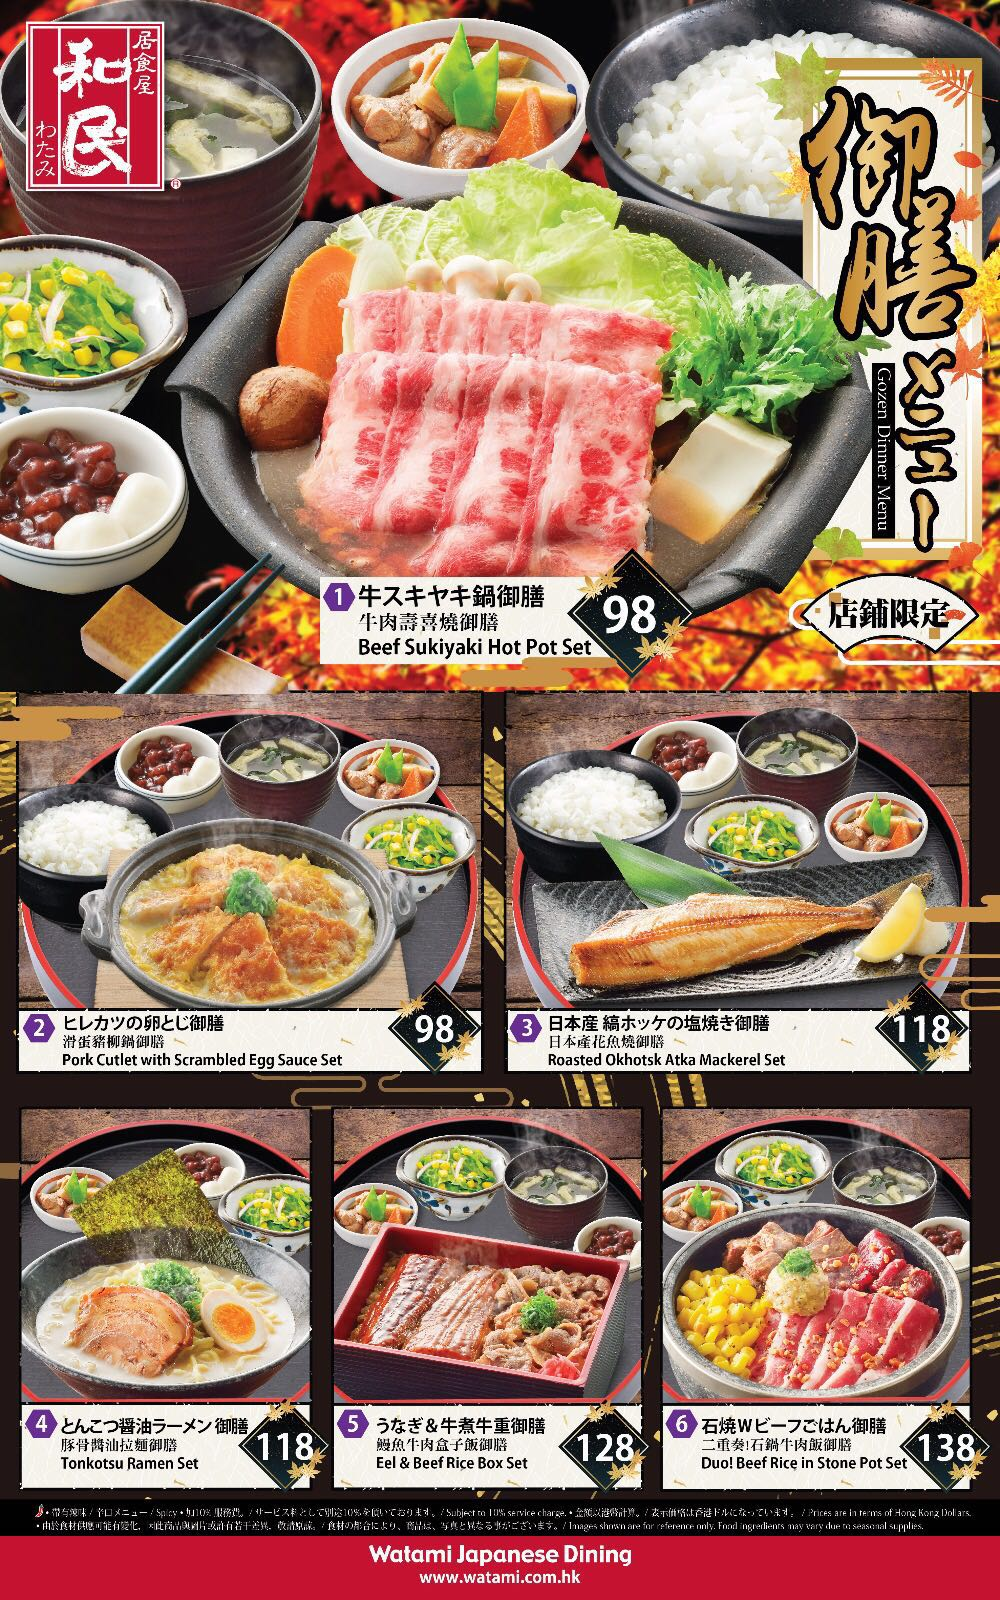 SC Dinner Gozen Menu 1.jpg